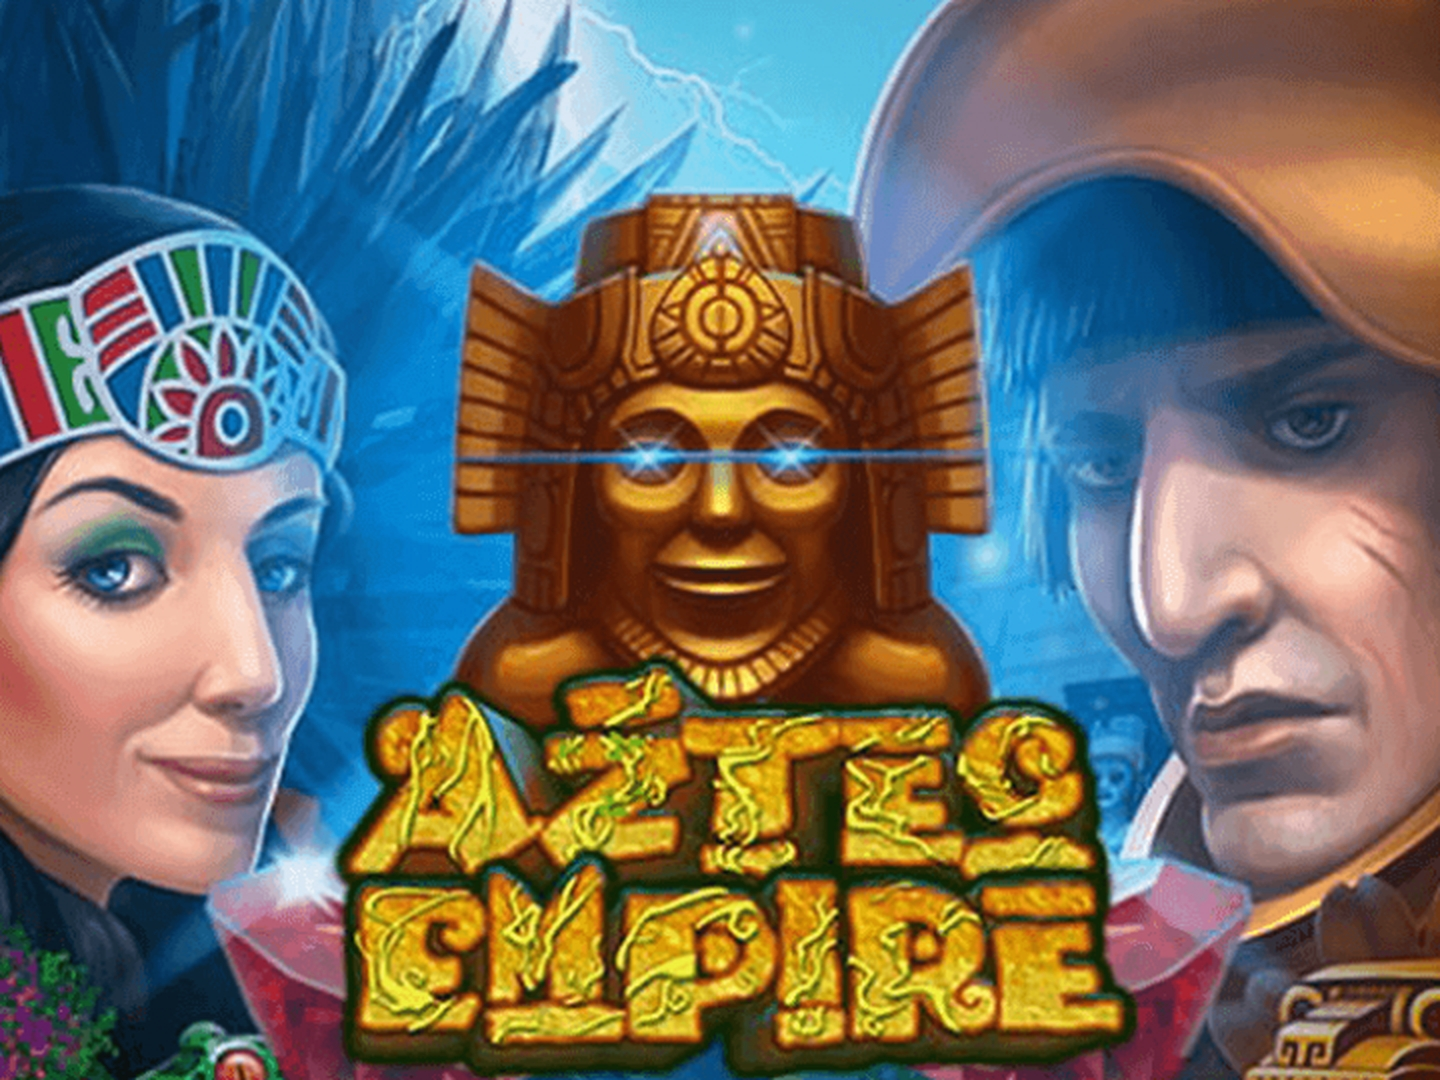 The Aztec Empire Online Slot Demo Game by Playson